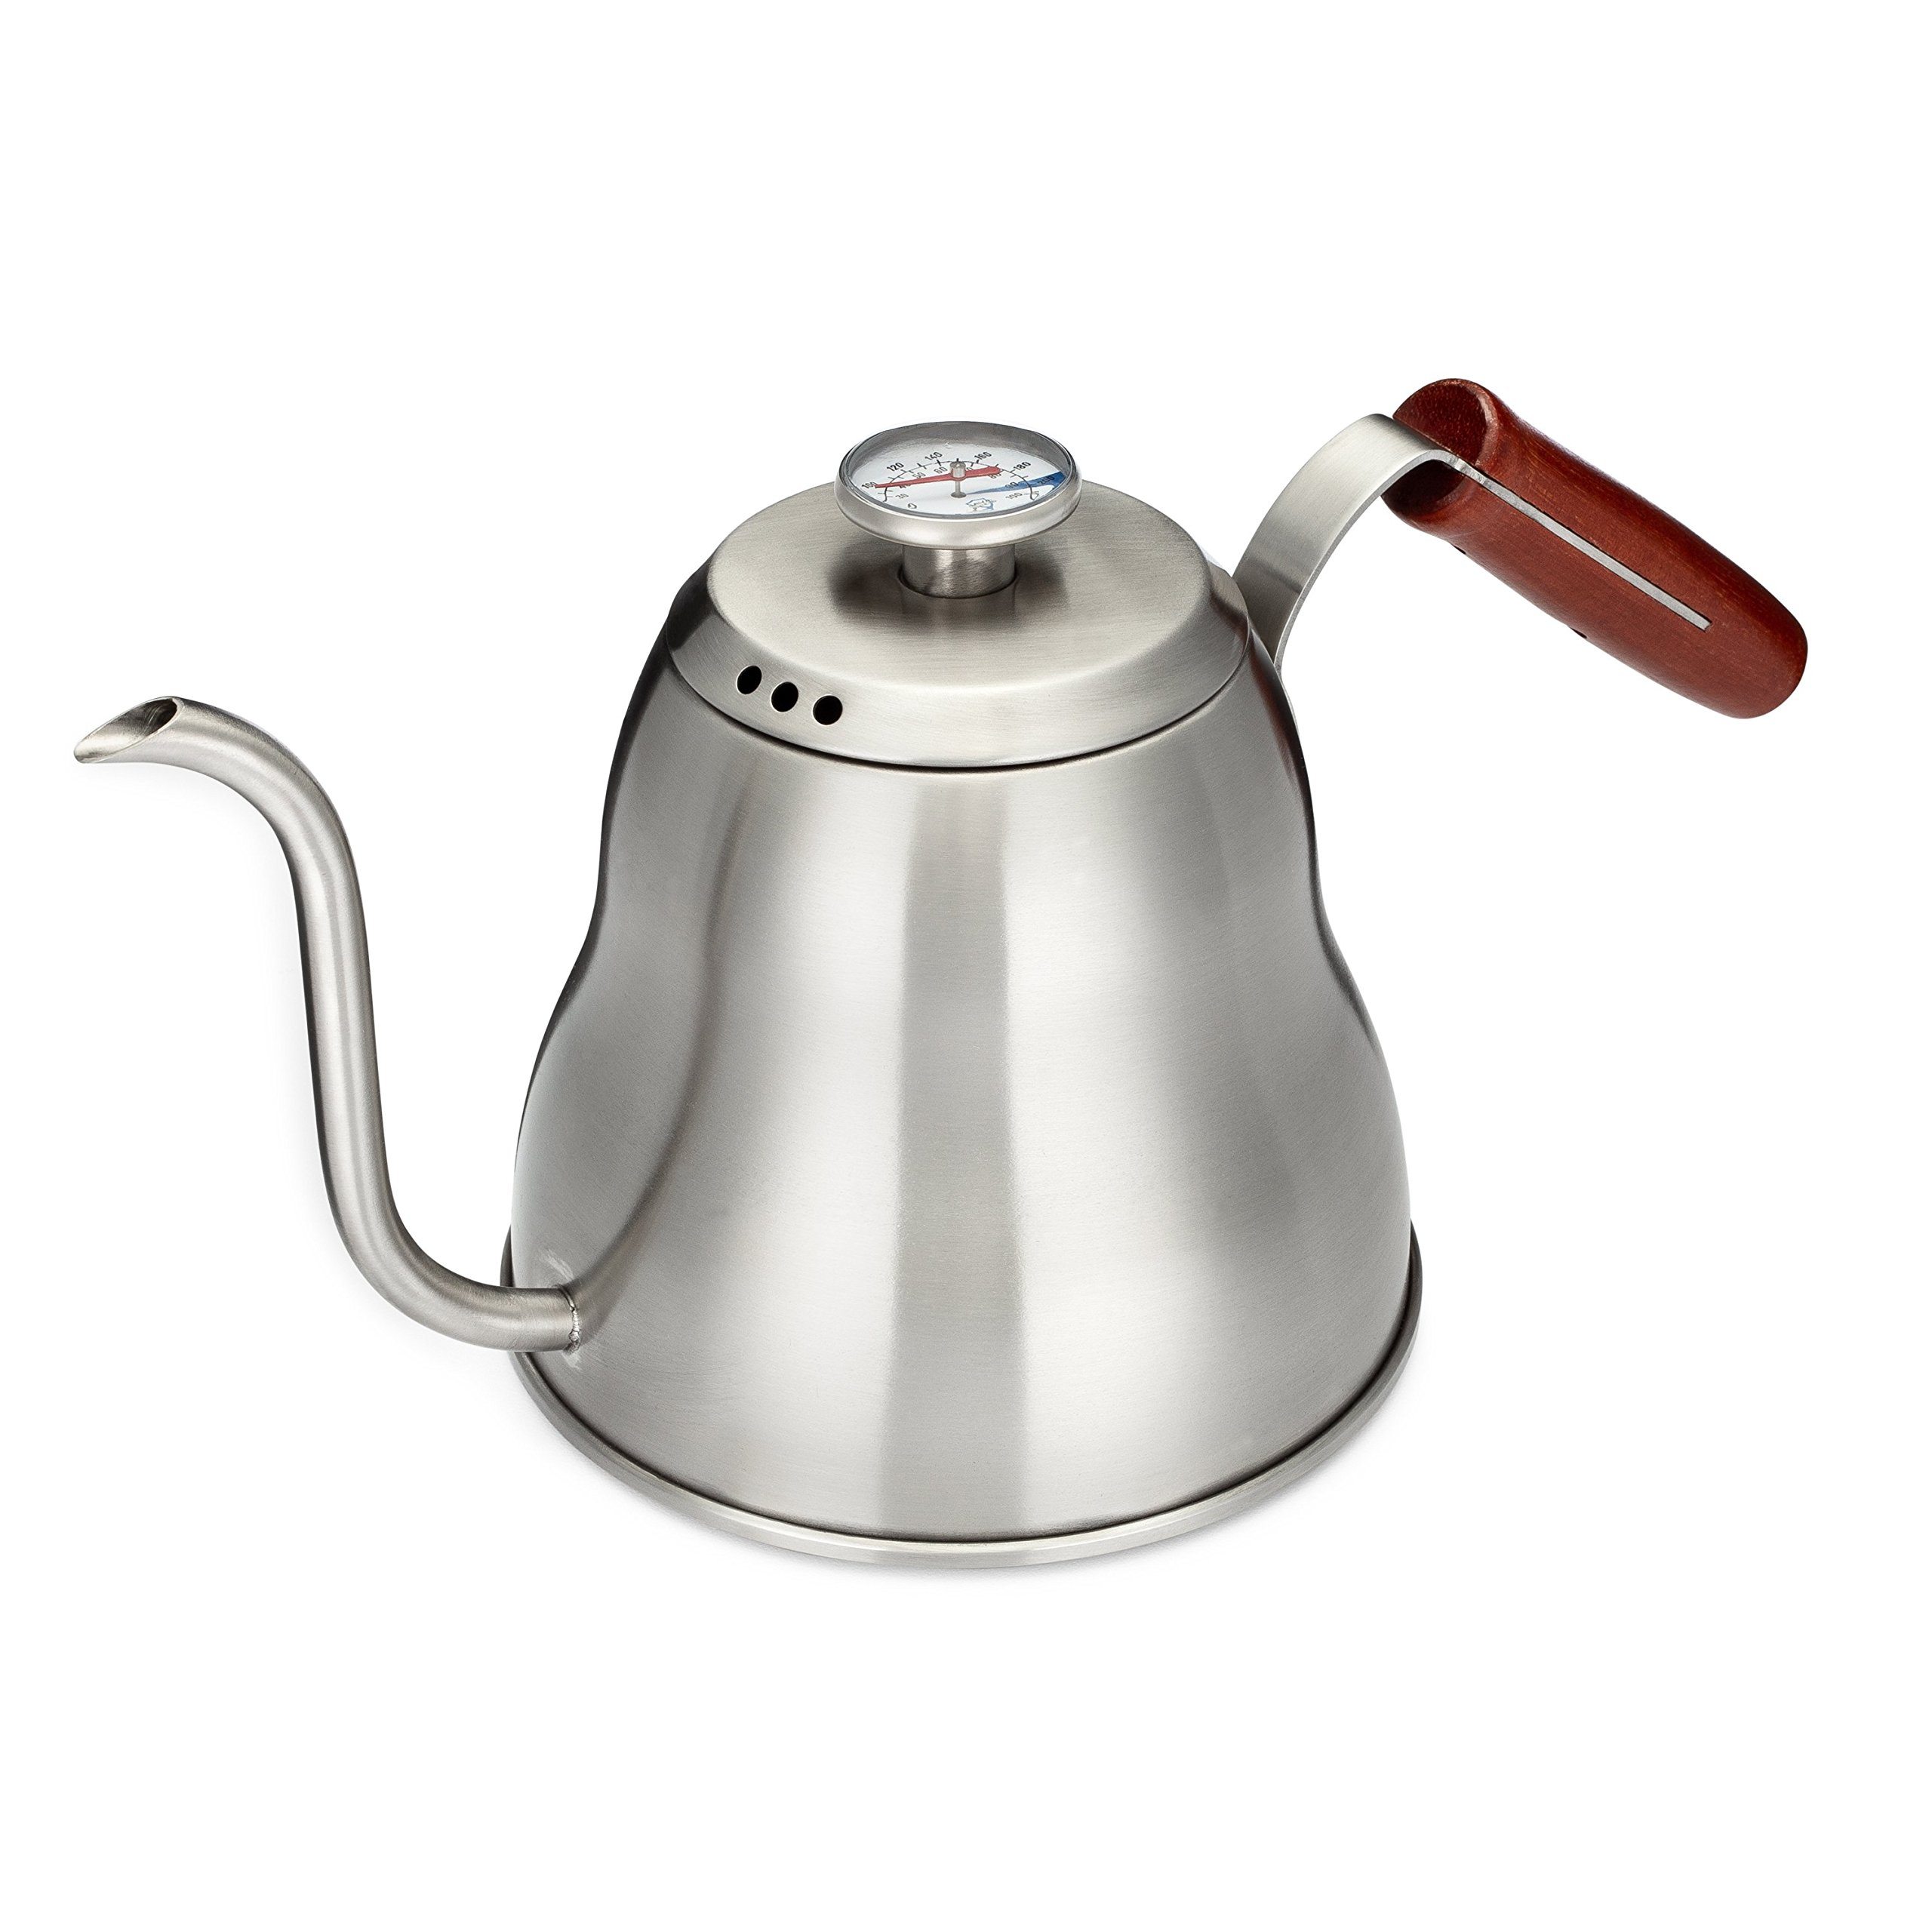 Java Shield Pour Over Kettle - Built-In Thermometer – 1.2 Liter/40floz Stainless Steel with Triple Layer Base – Gooseneck Spout for a Precision Pour (1.2 Liter/40floz)